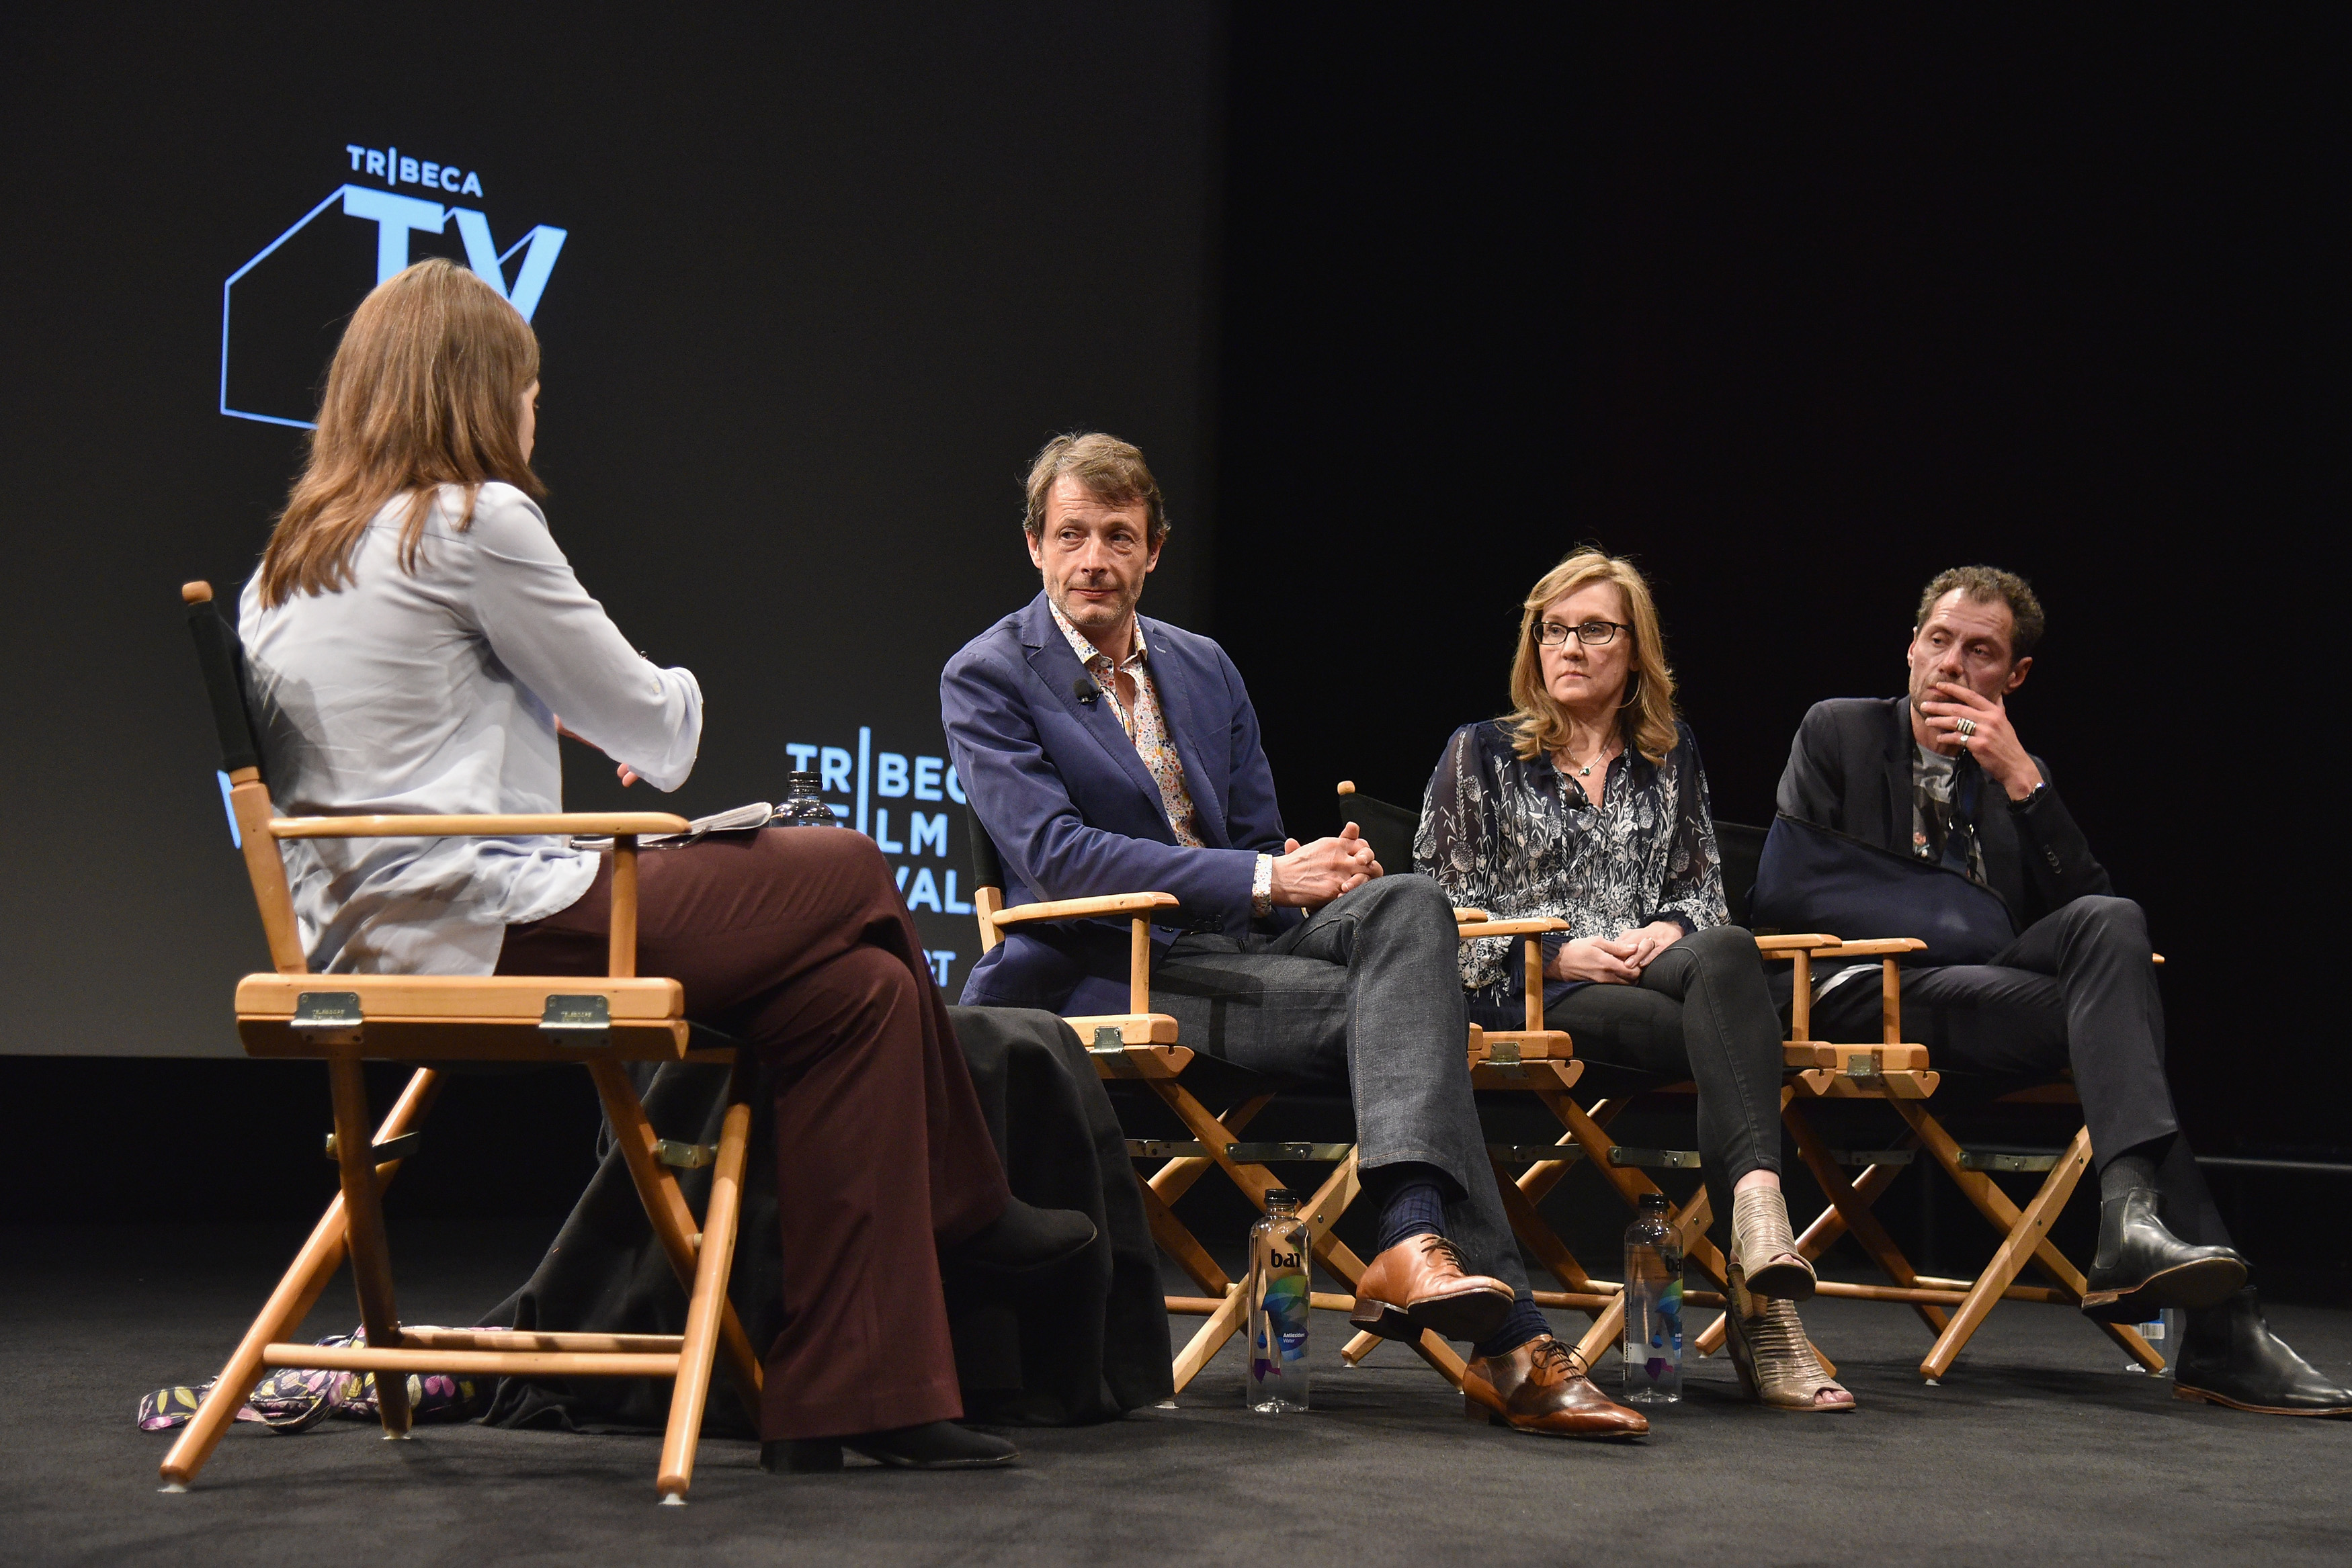 Jean-Xavier de Lestrade also explained why